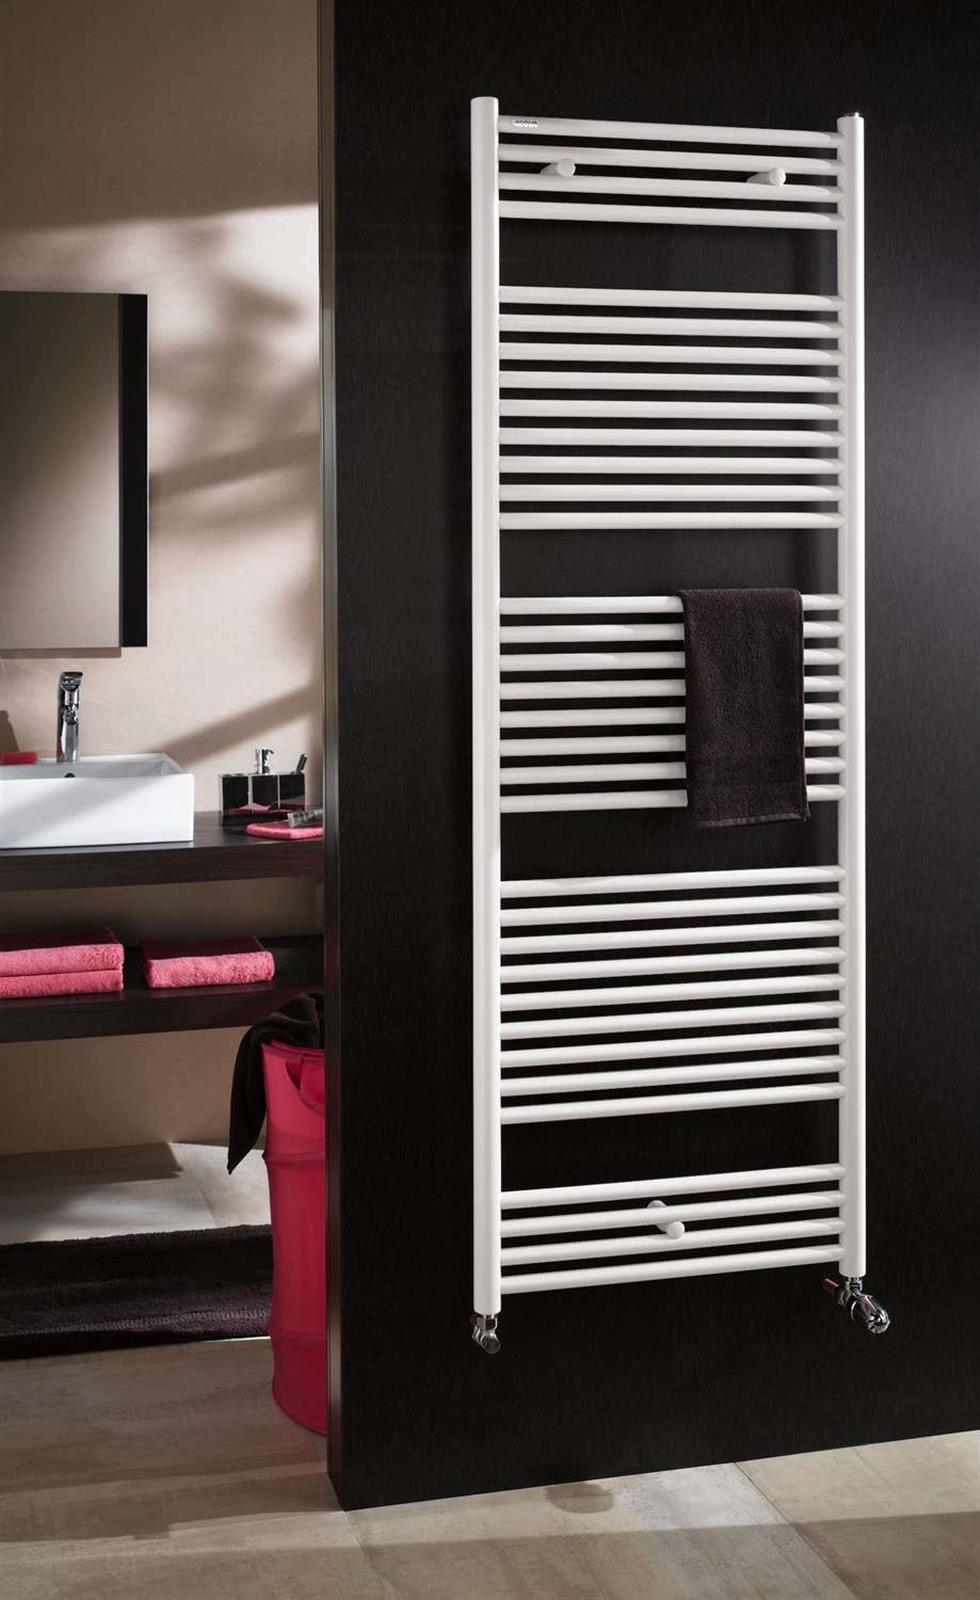 radiateur sche serviettes symtrique atoll spa slo. Black Bedroom Furniture Sets. Home Design Ideas